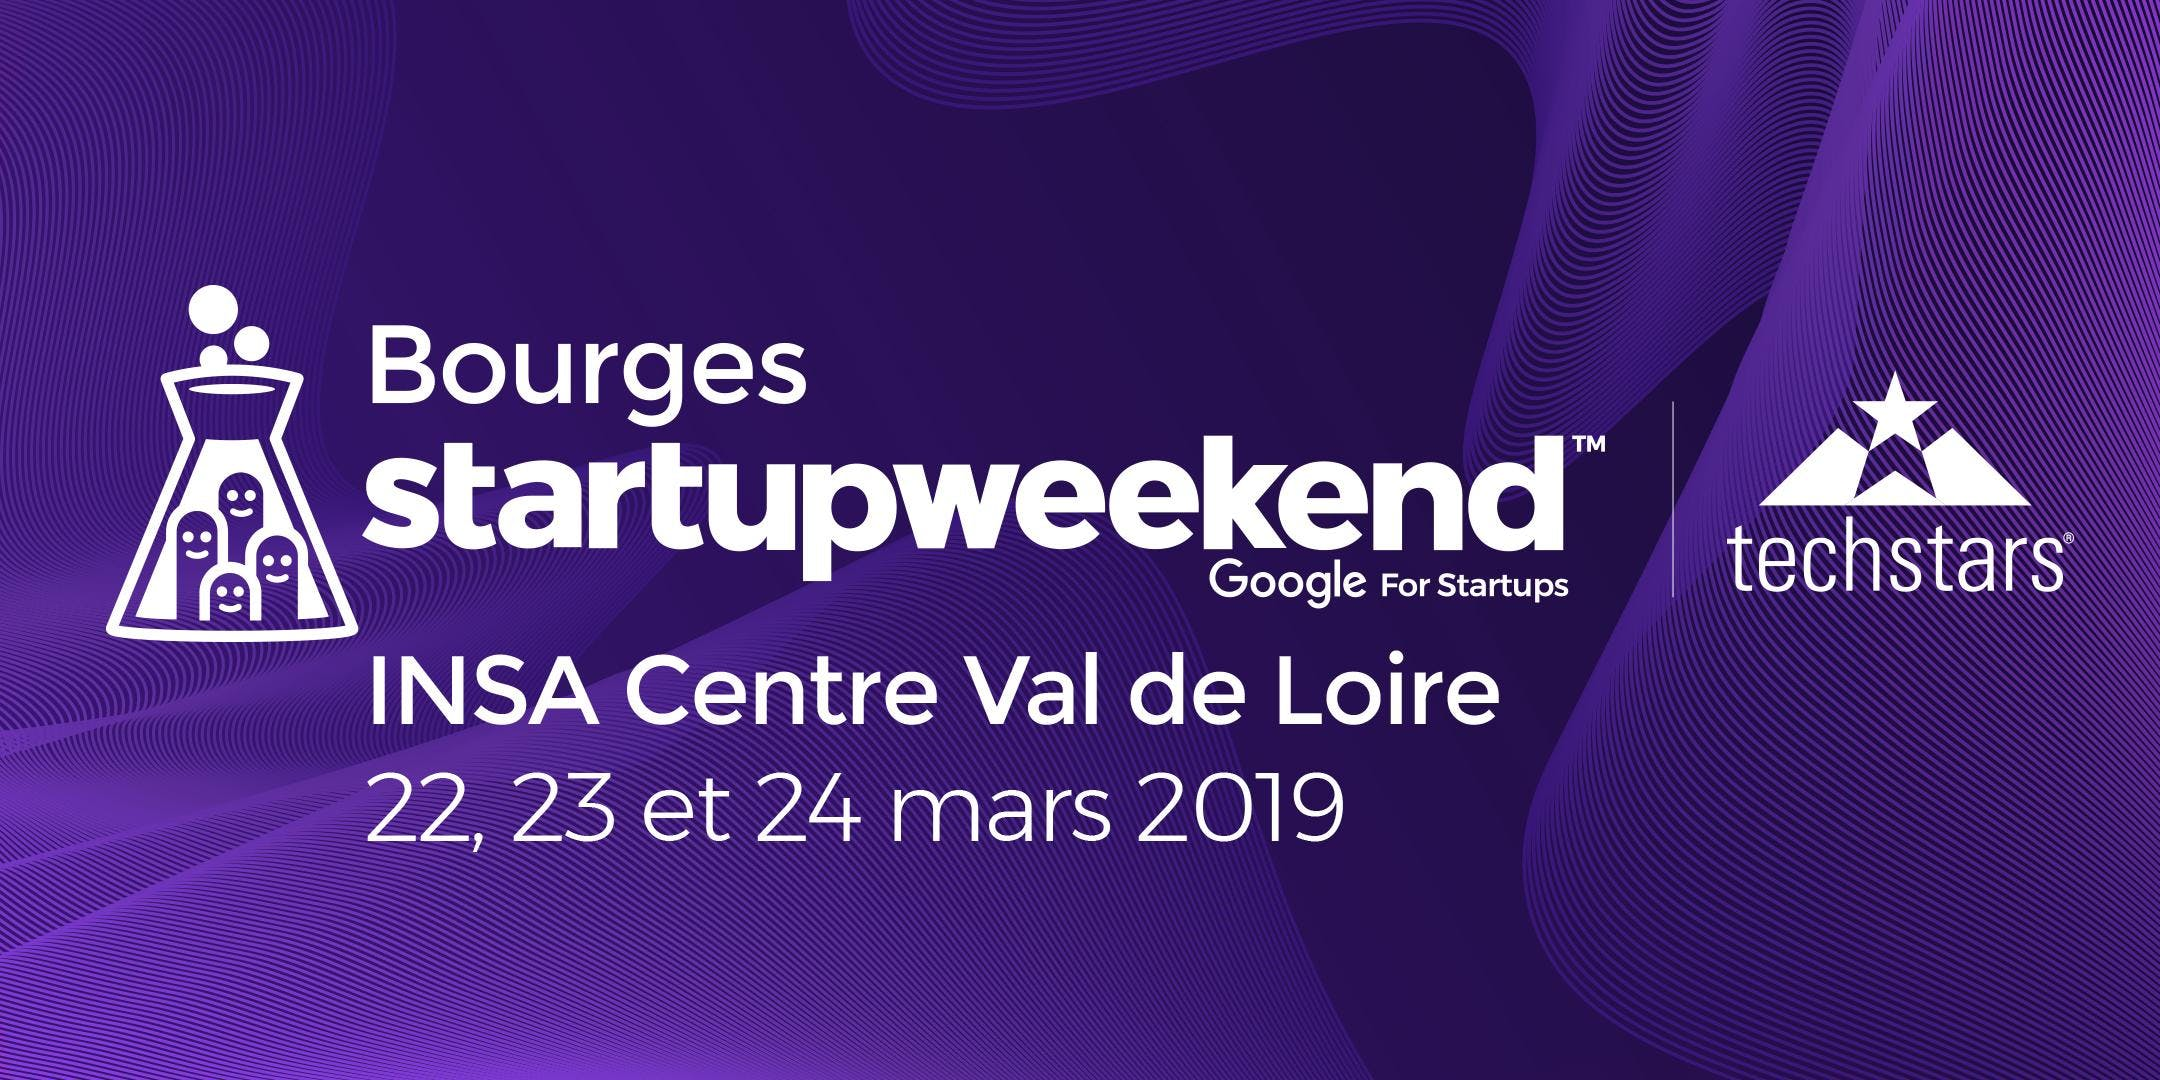 Techstars Startup Weekend Bourges 03/19